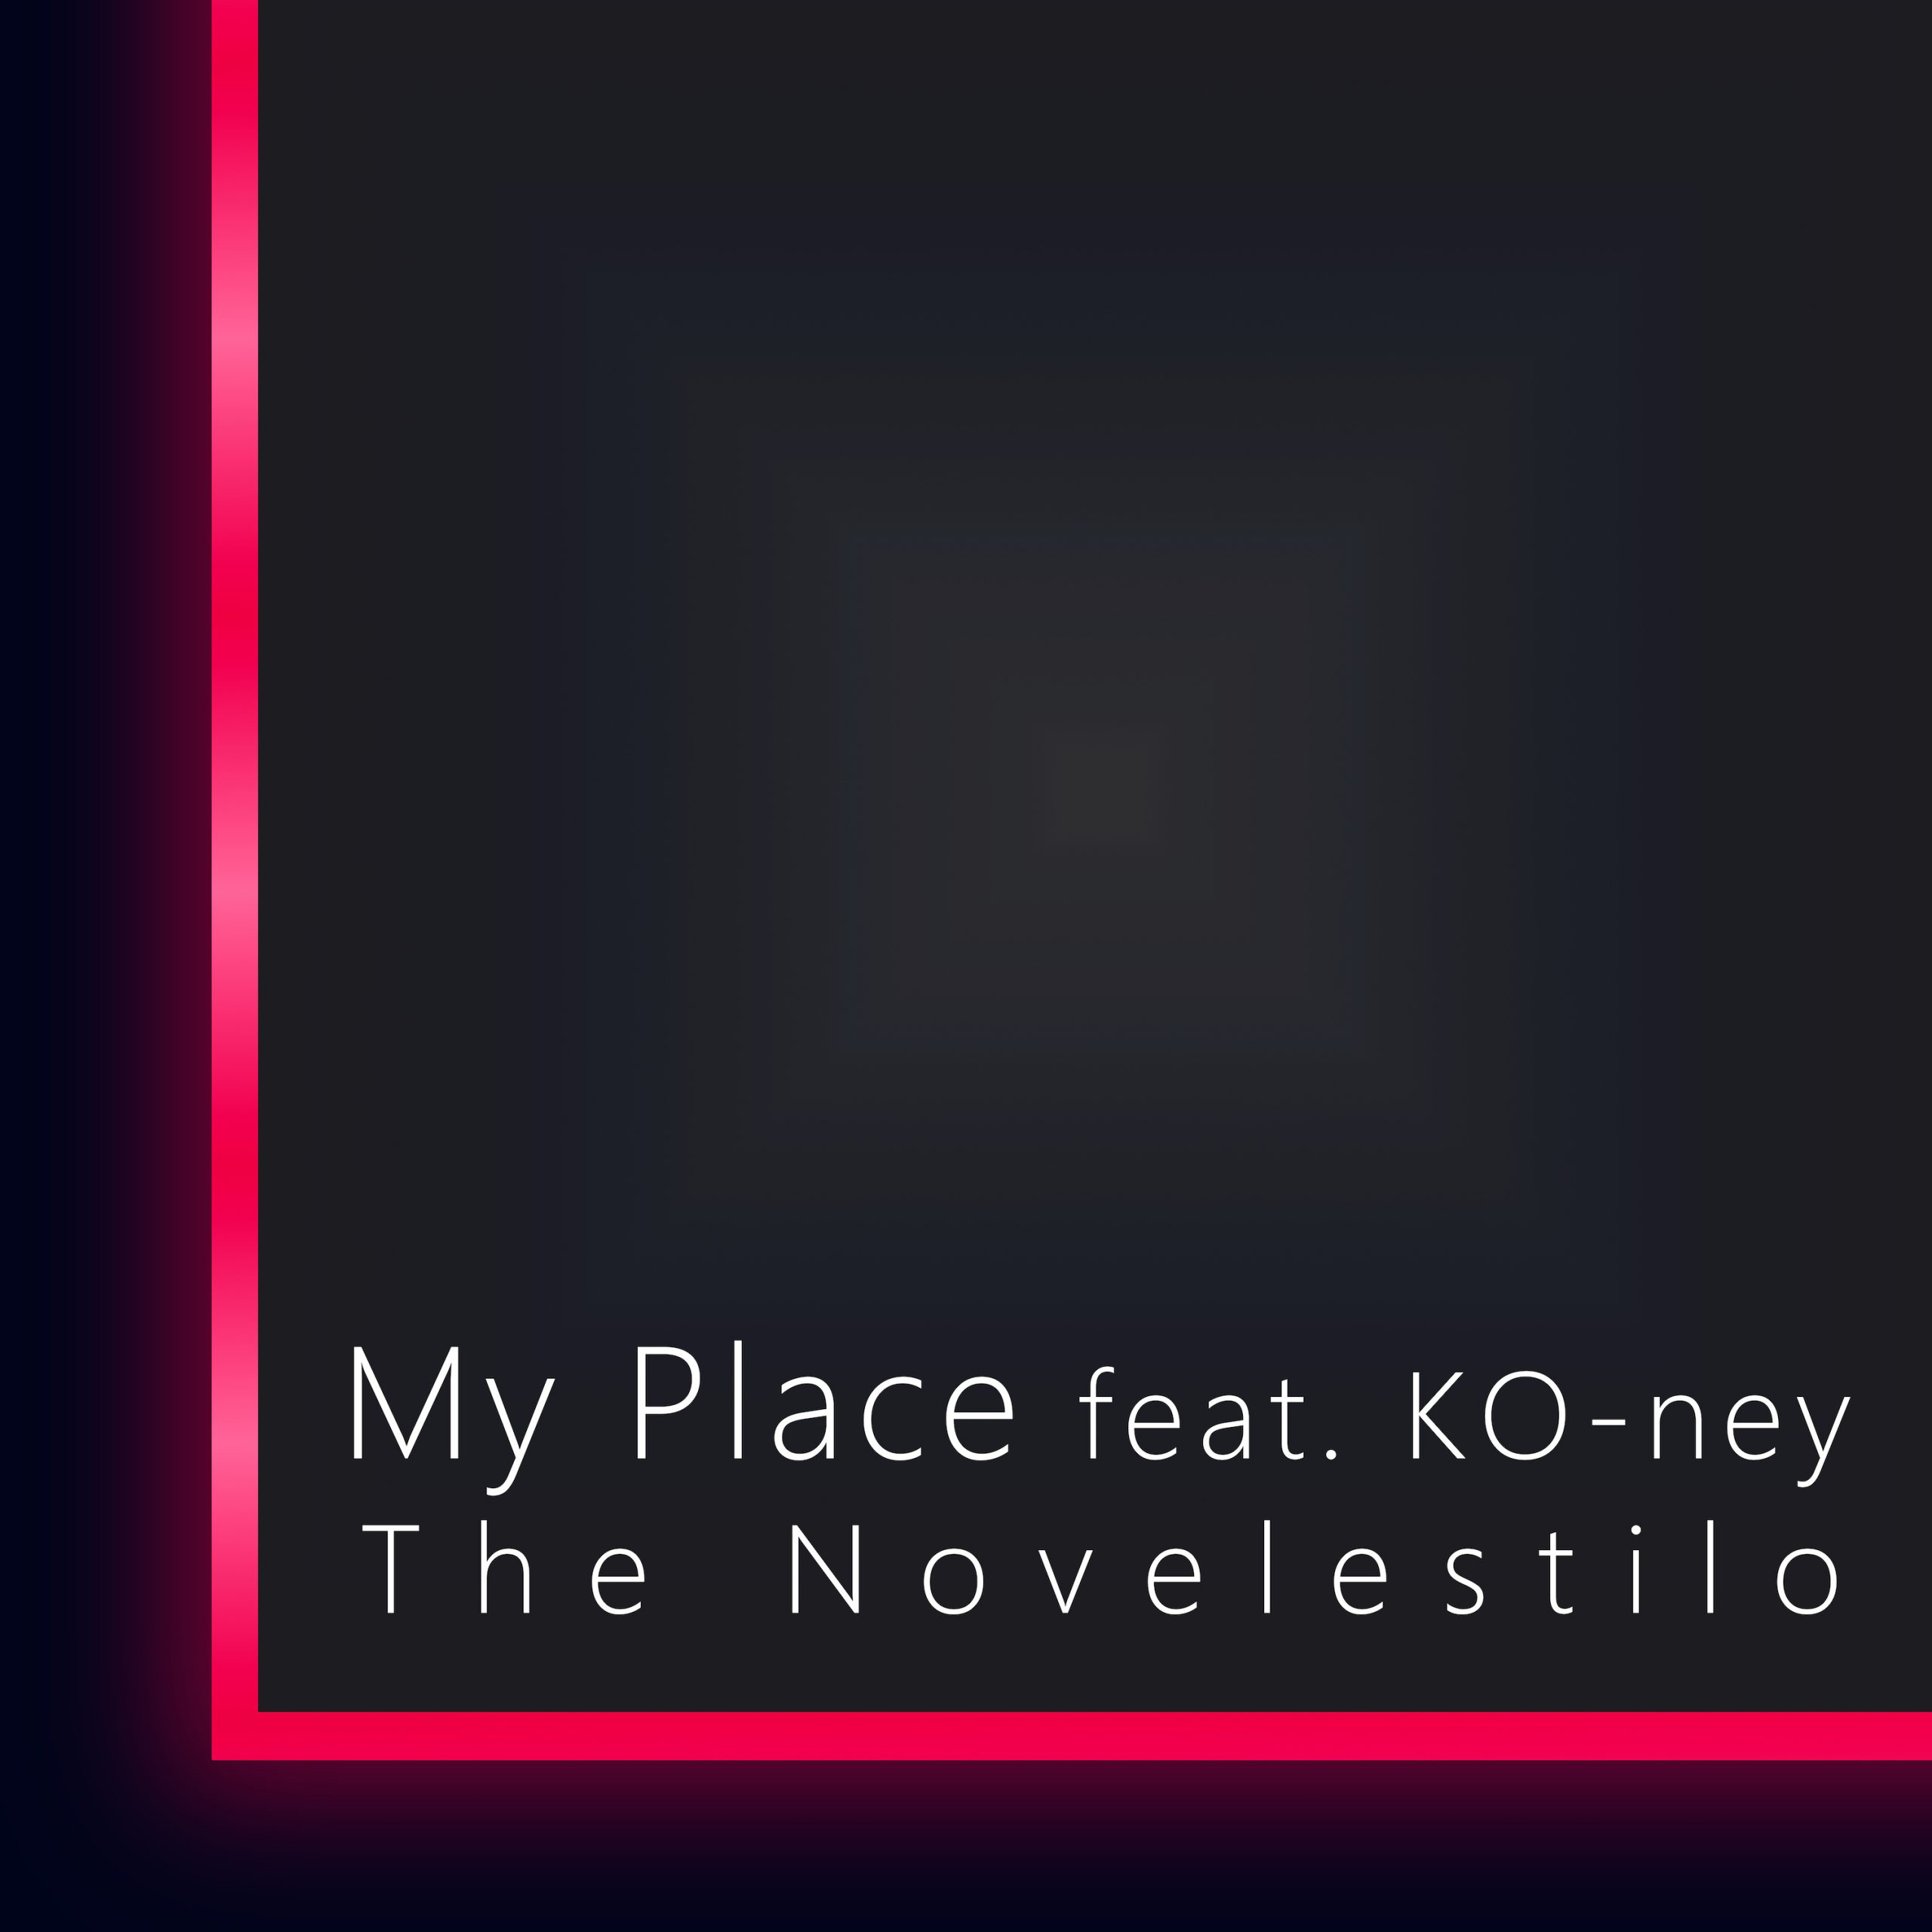 My Place feat. KO-ney